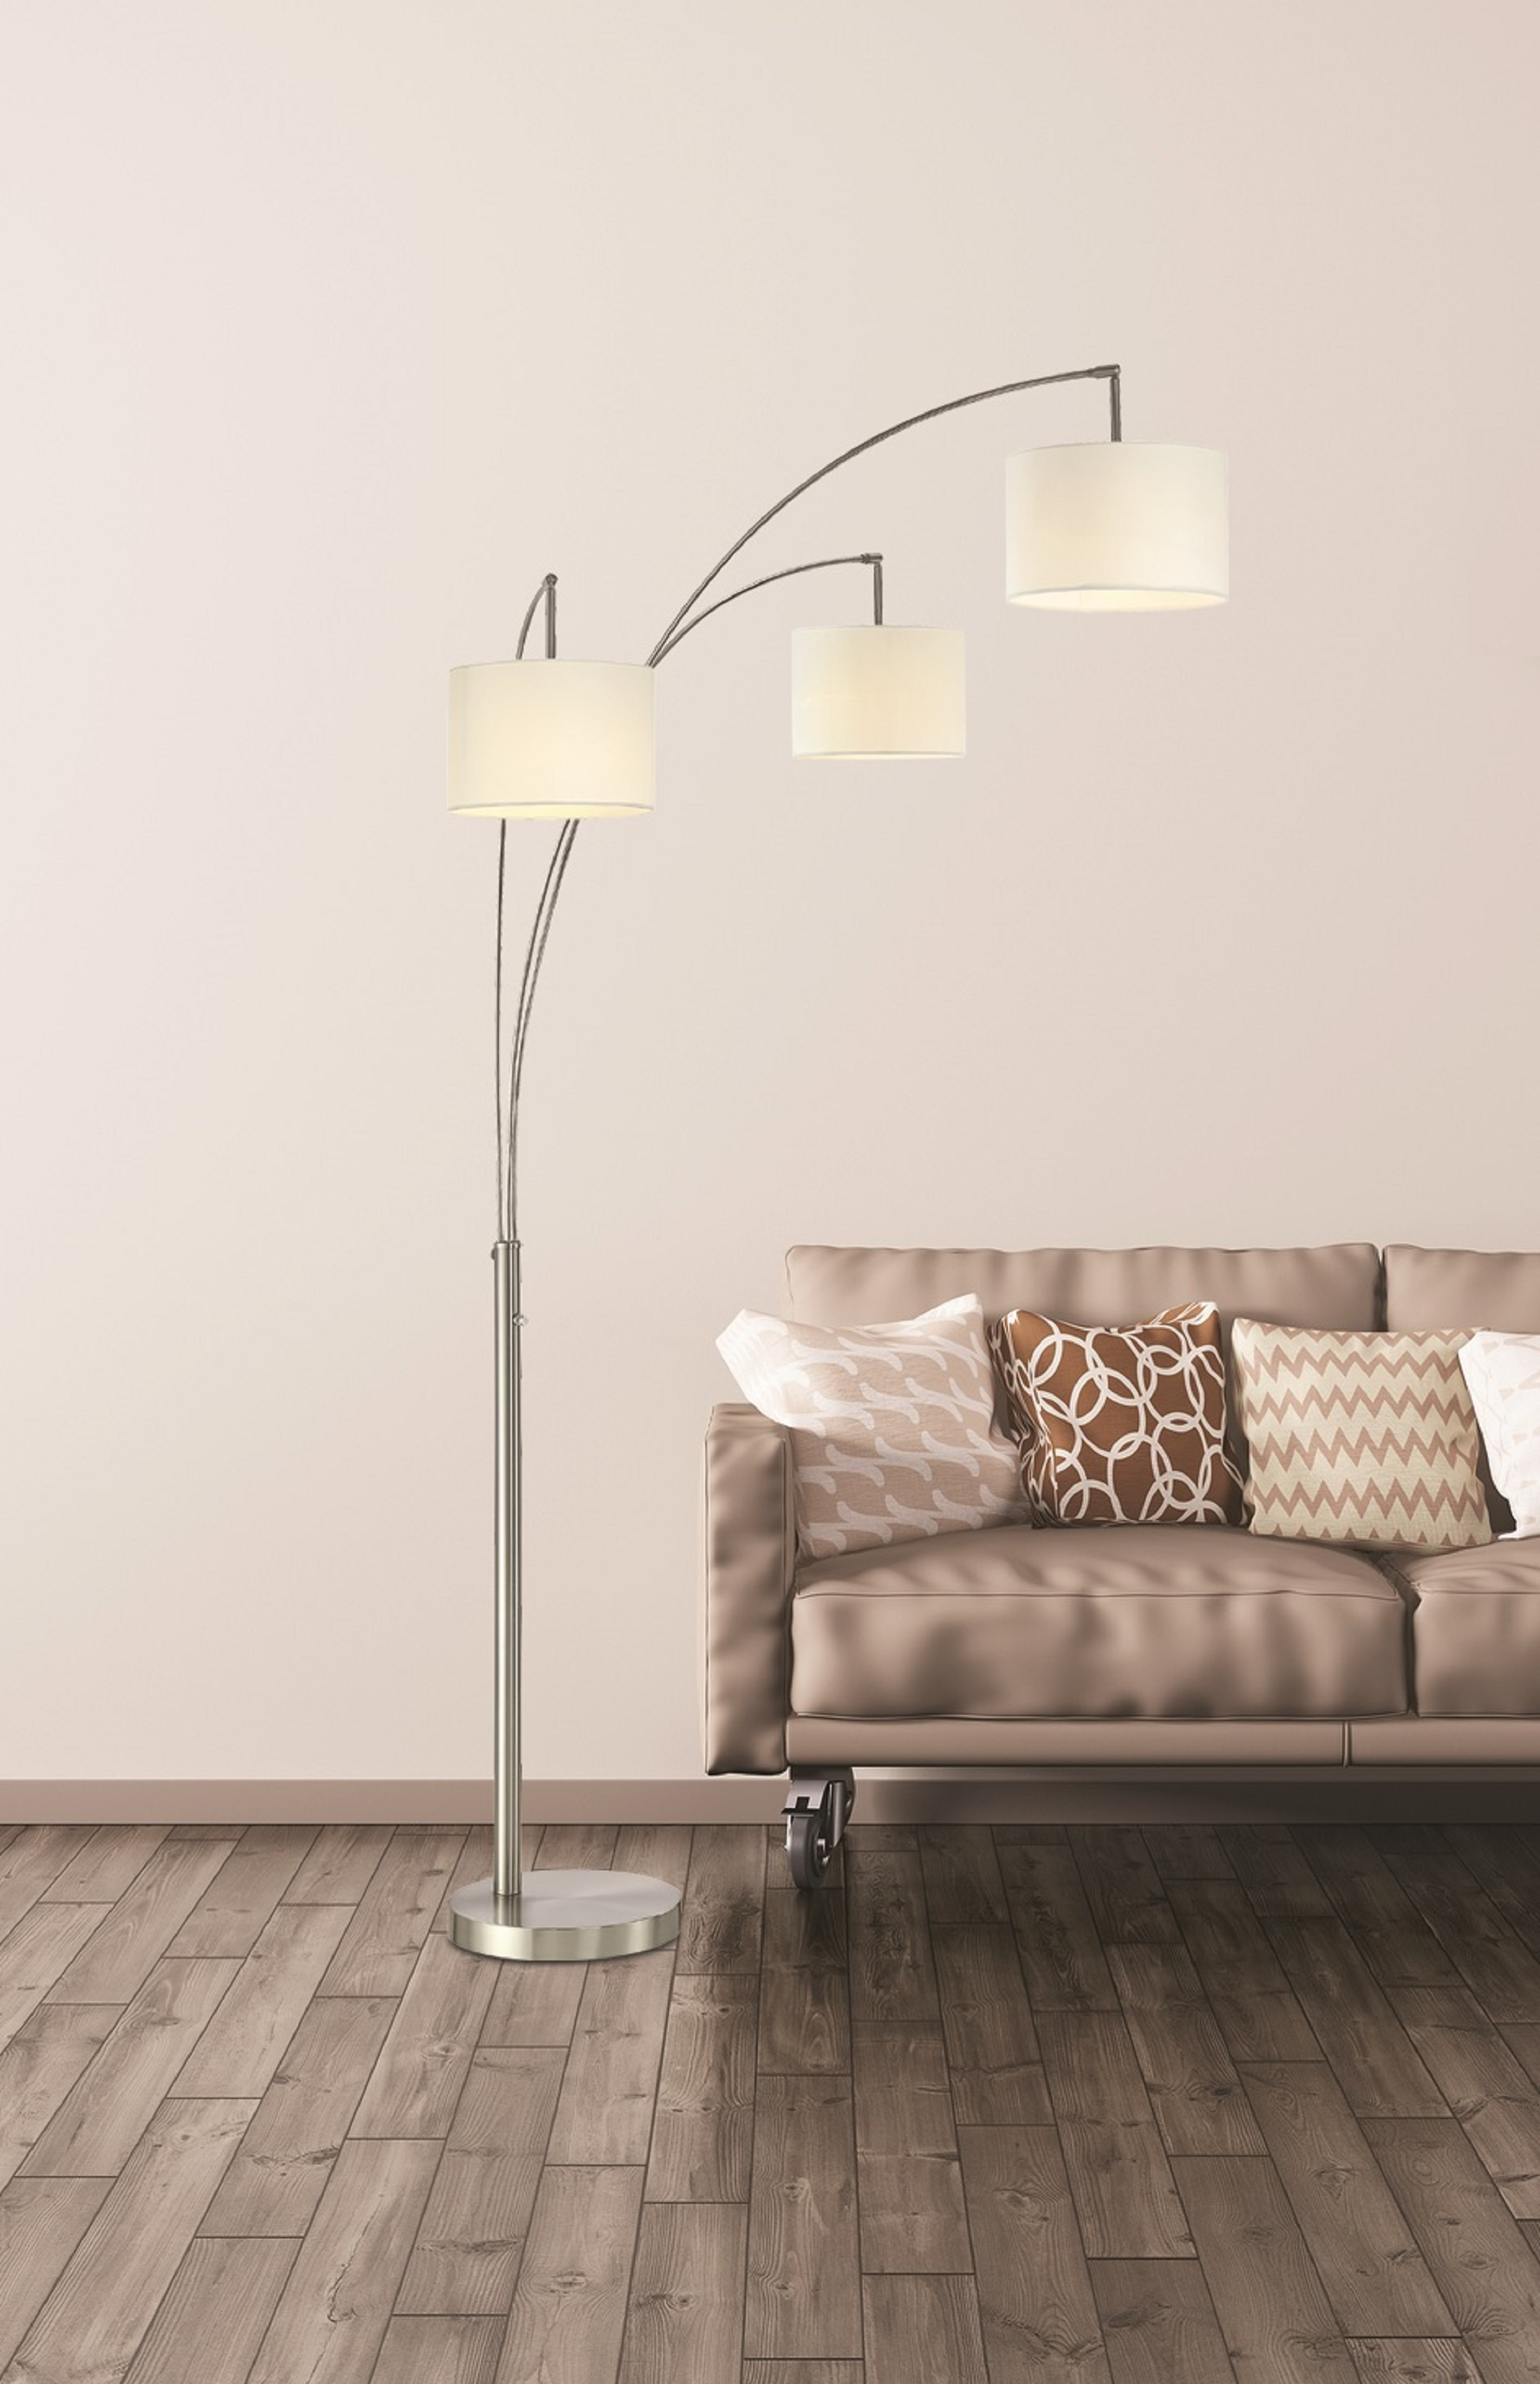 Artiva Usa Lumiere Modern Led 3 Arched Brushed Steel 80 Inch Floor Lamp With Dimmer Walmart Com Walmart Com